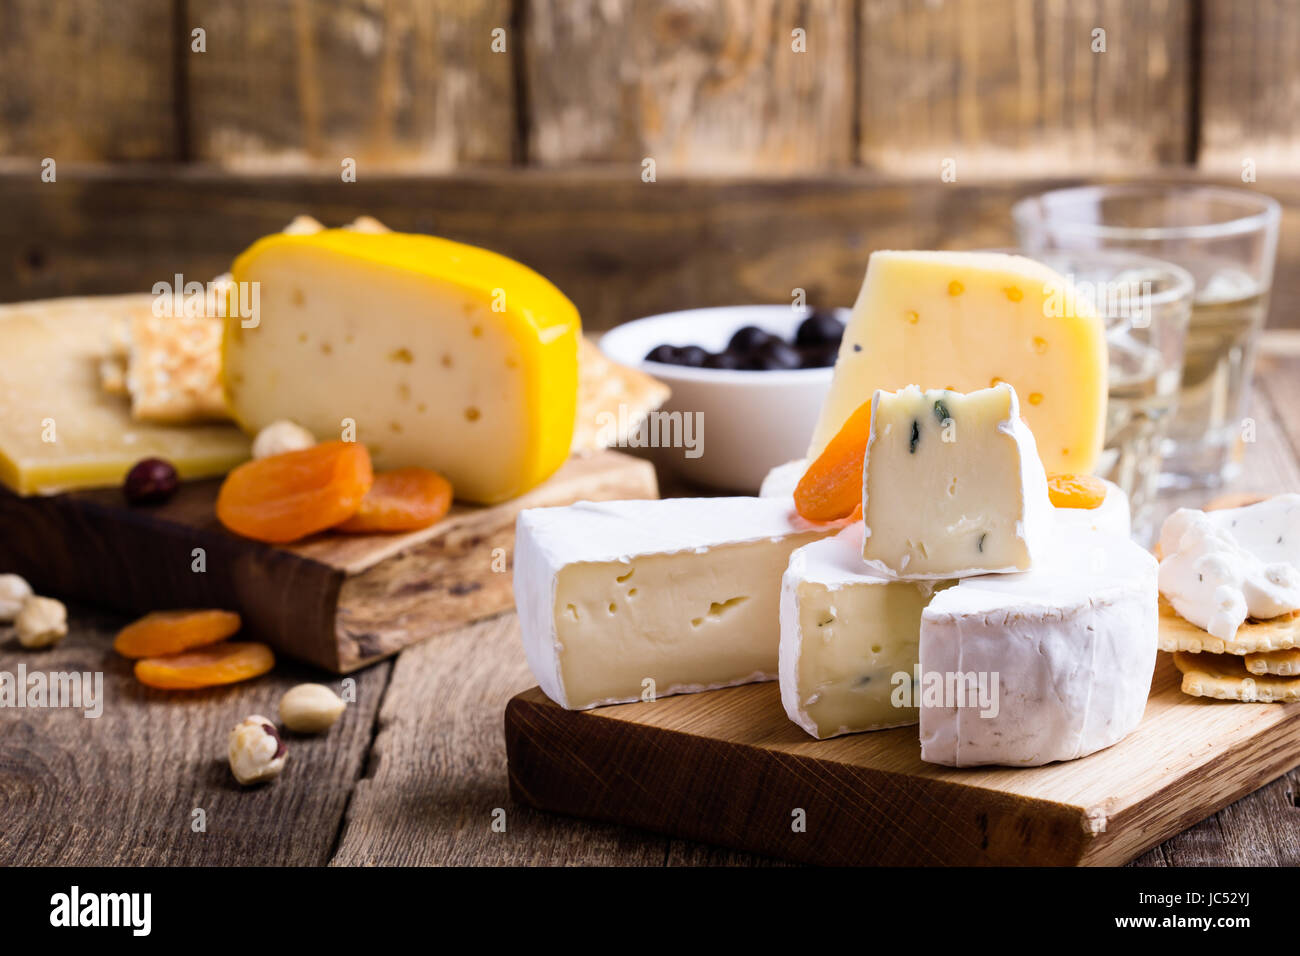 Cheese and wine party  table, perfect holiday appetizer on rustic wooden board - Stock Image